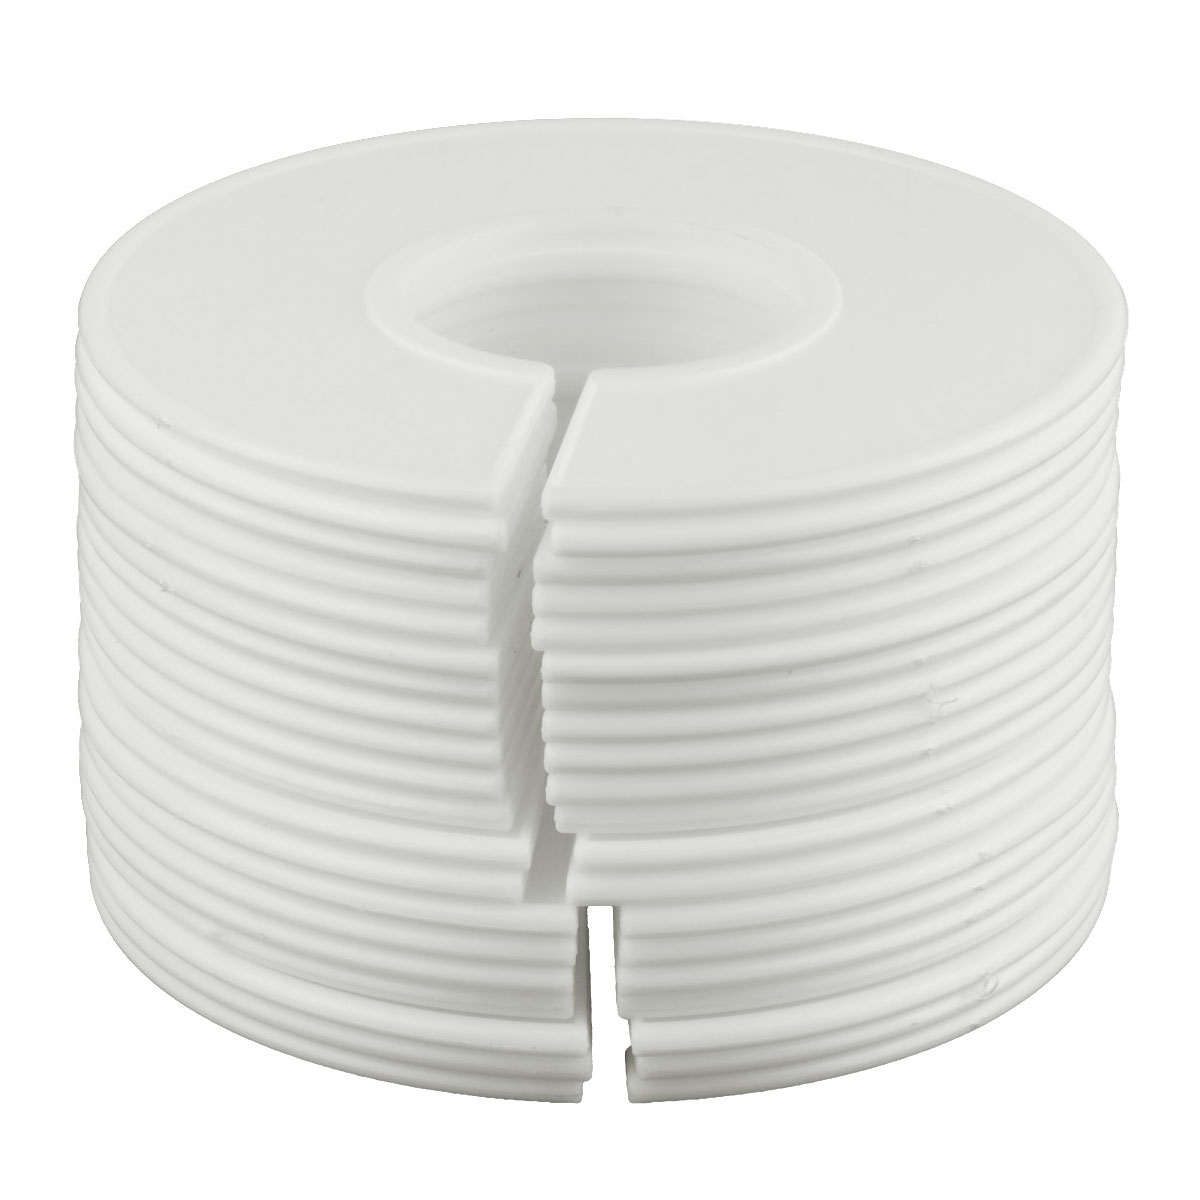 Arts,crafts & Sewing 5 Blank Round Rack Plastic Clothing Dividers Fits Ring Size Round Or Square Tube Garment Tags Size Marking Ring